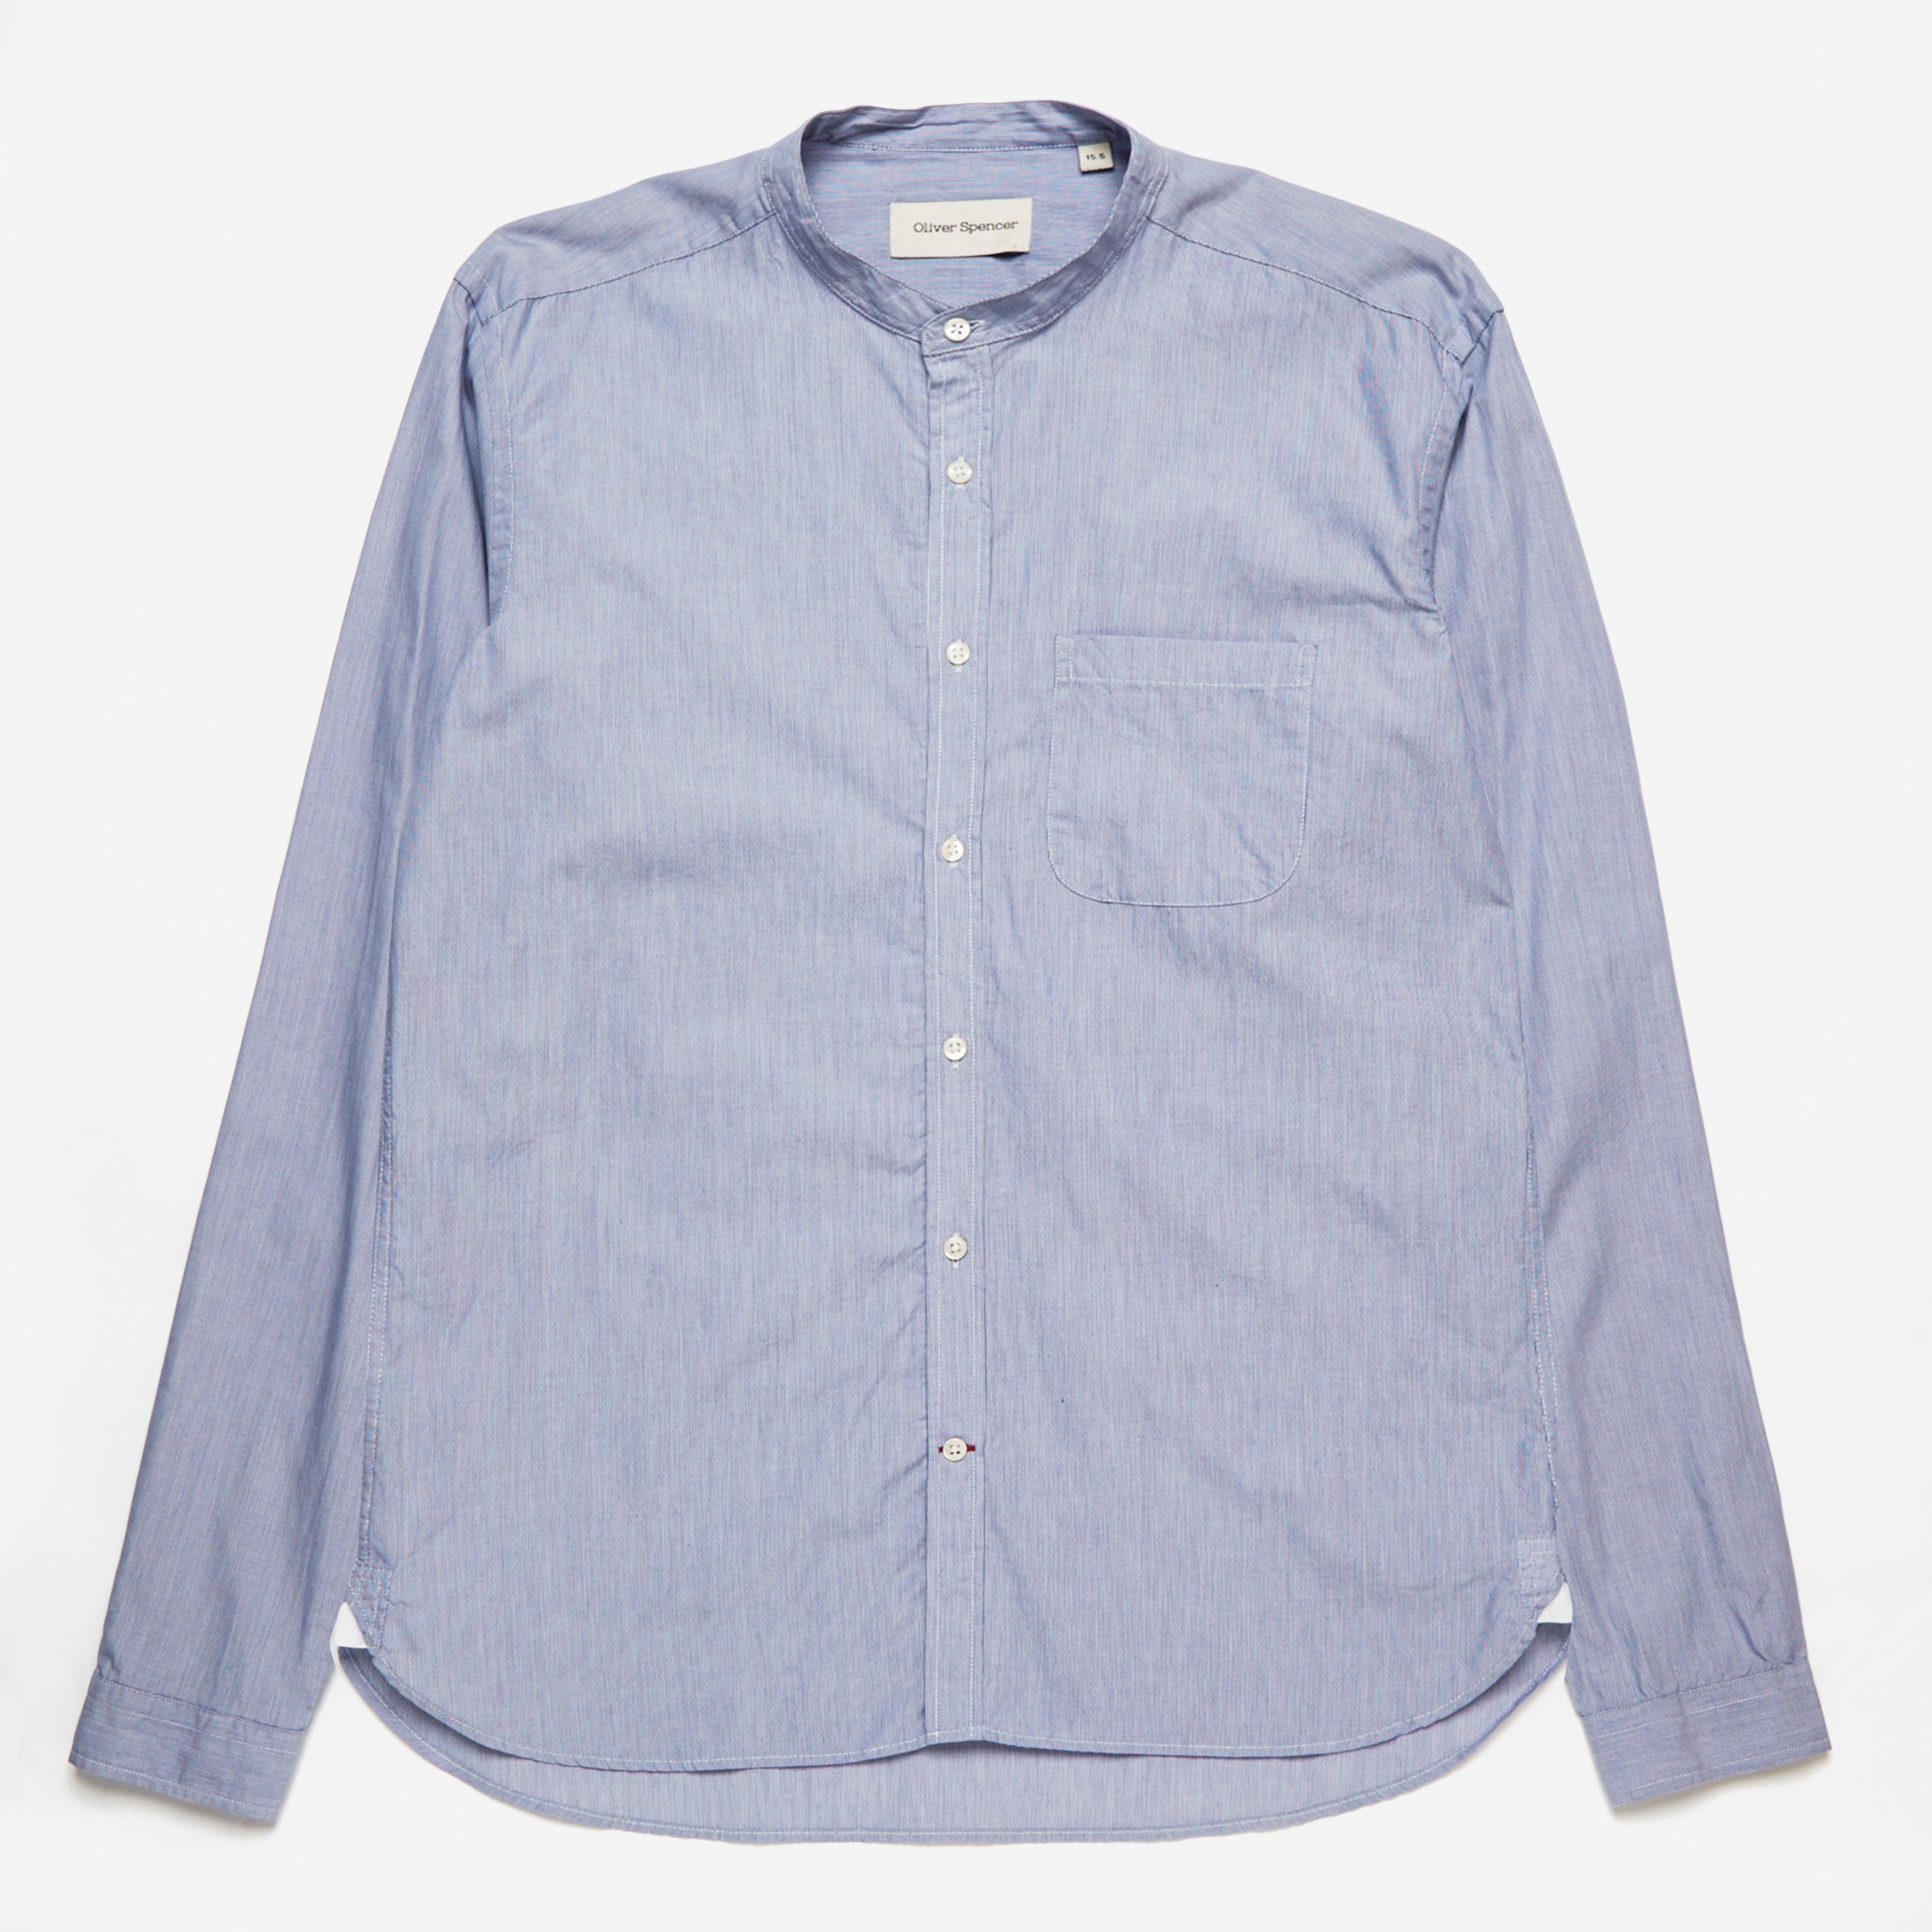 Oliver Spencer Grandad Shirt Lancaster Blue